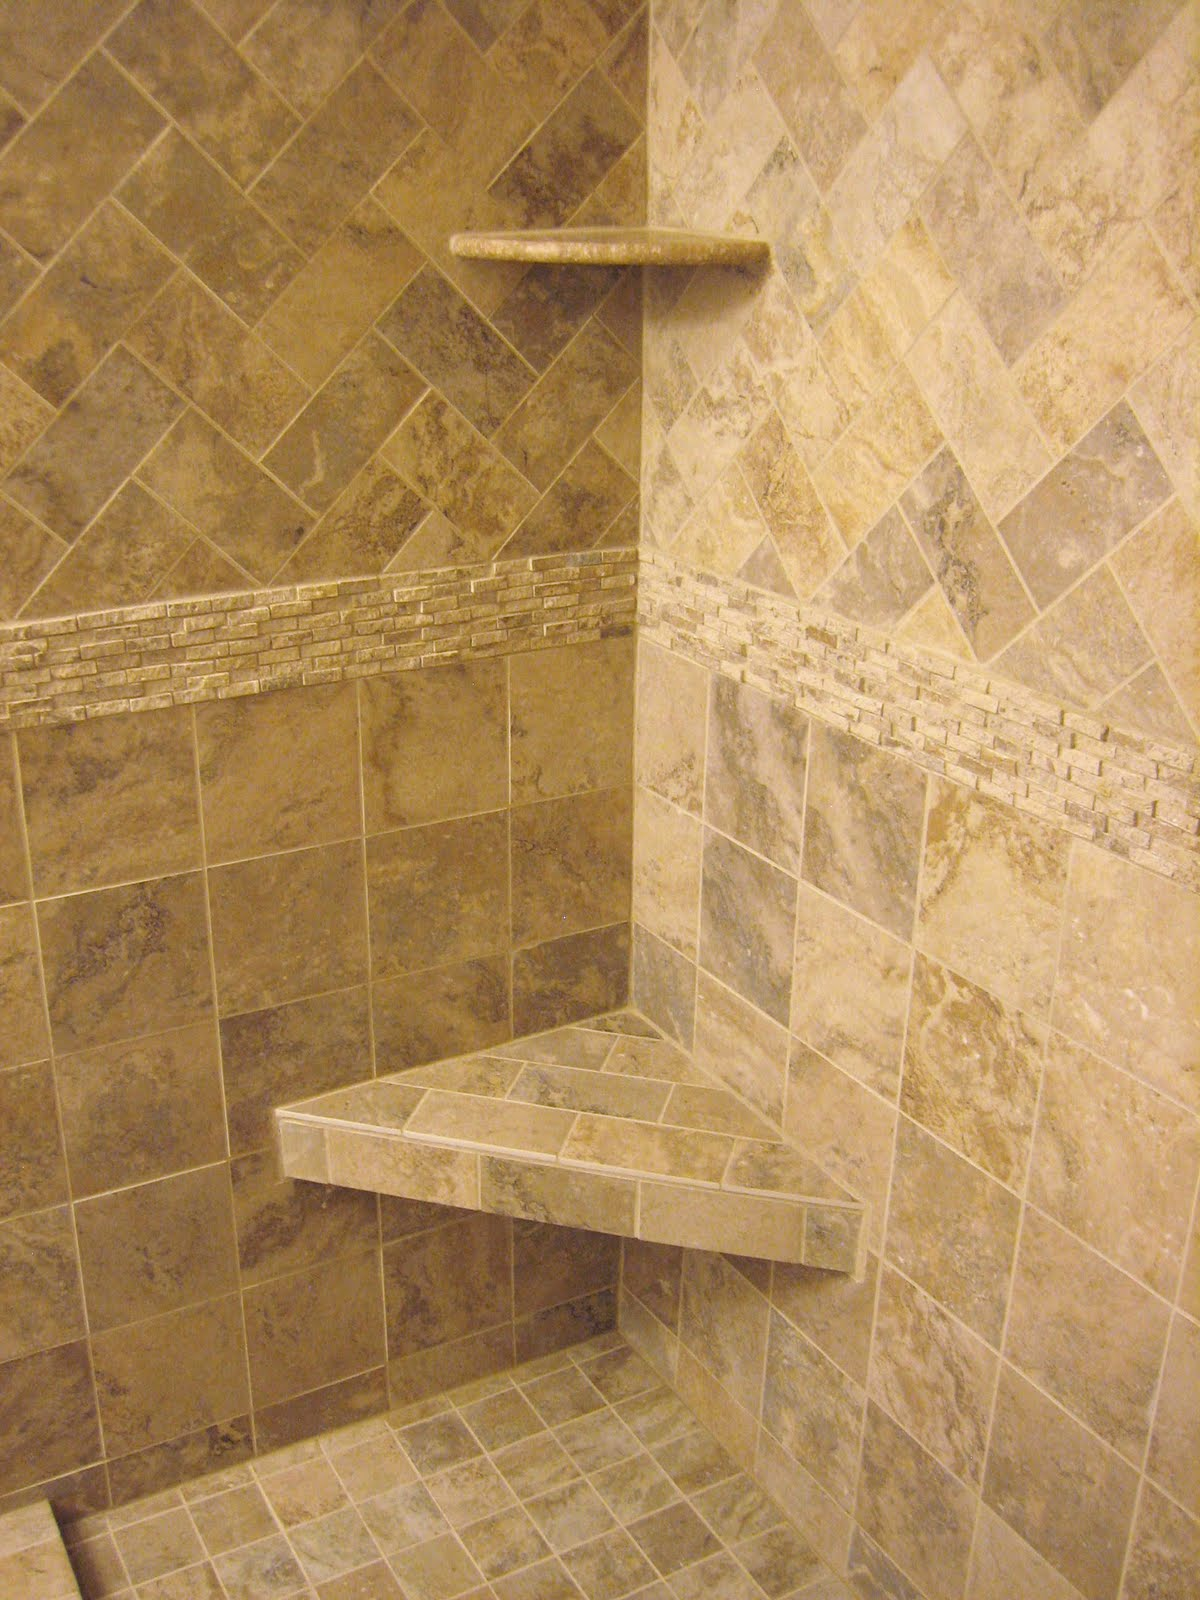 H winter showroom blog june 2010 for Bathroom ideas marble tile